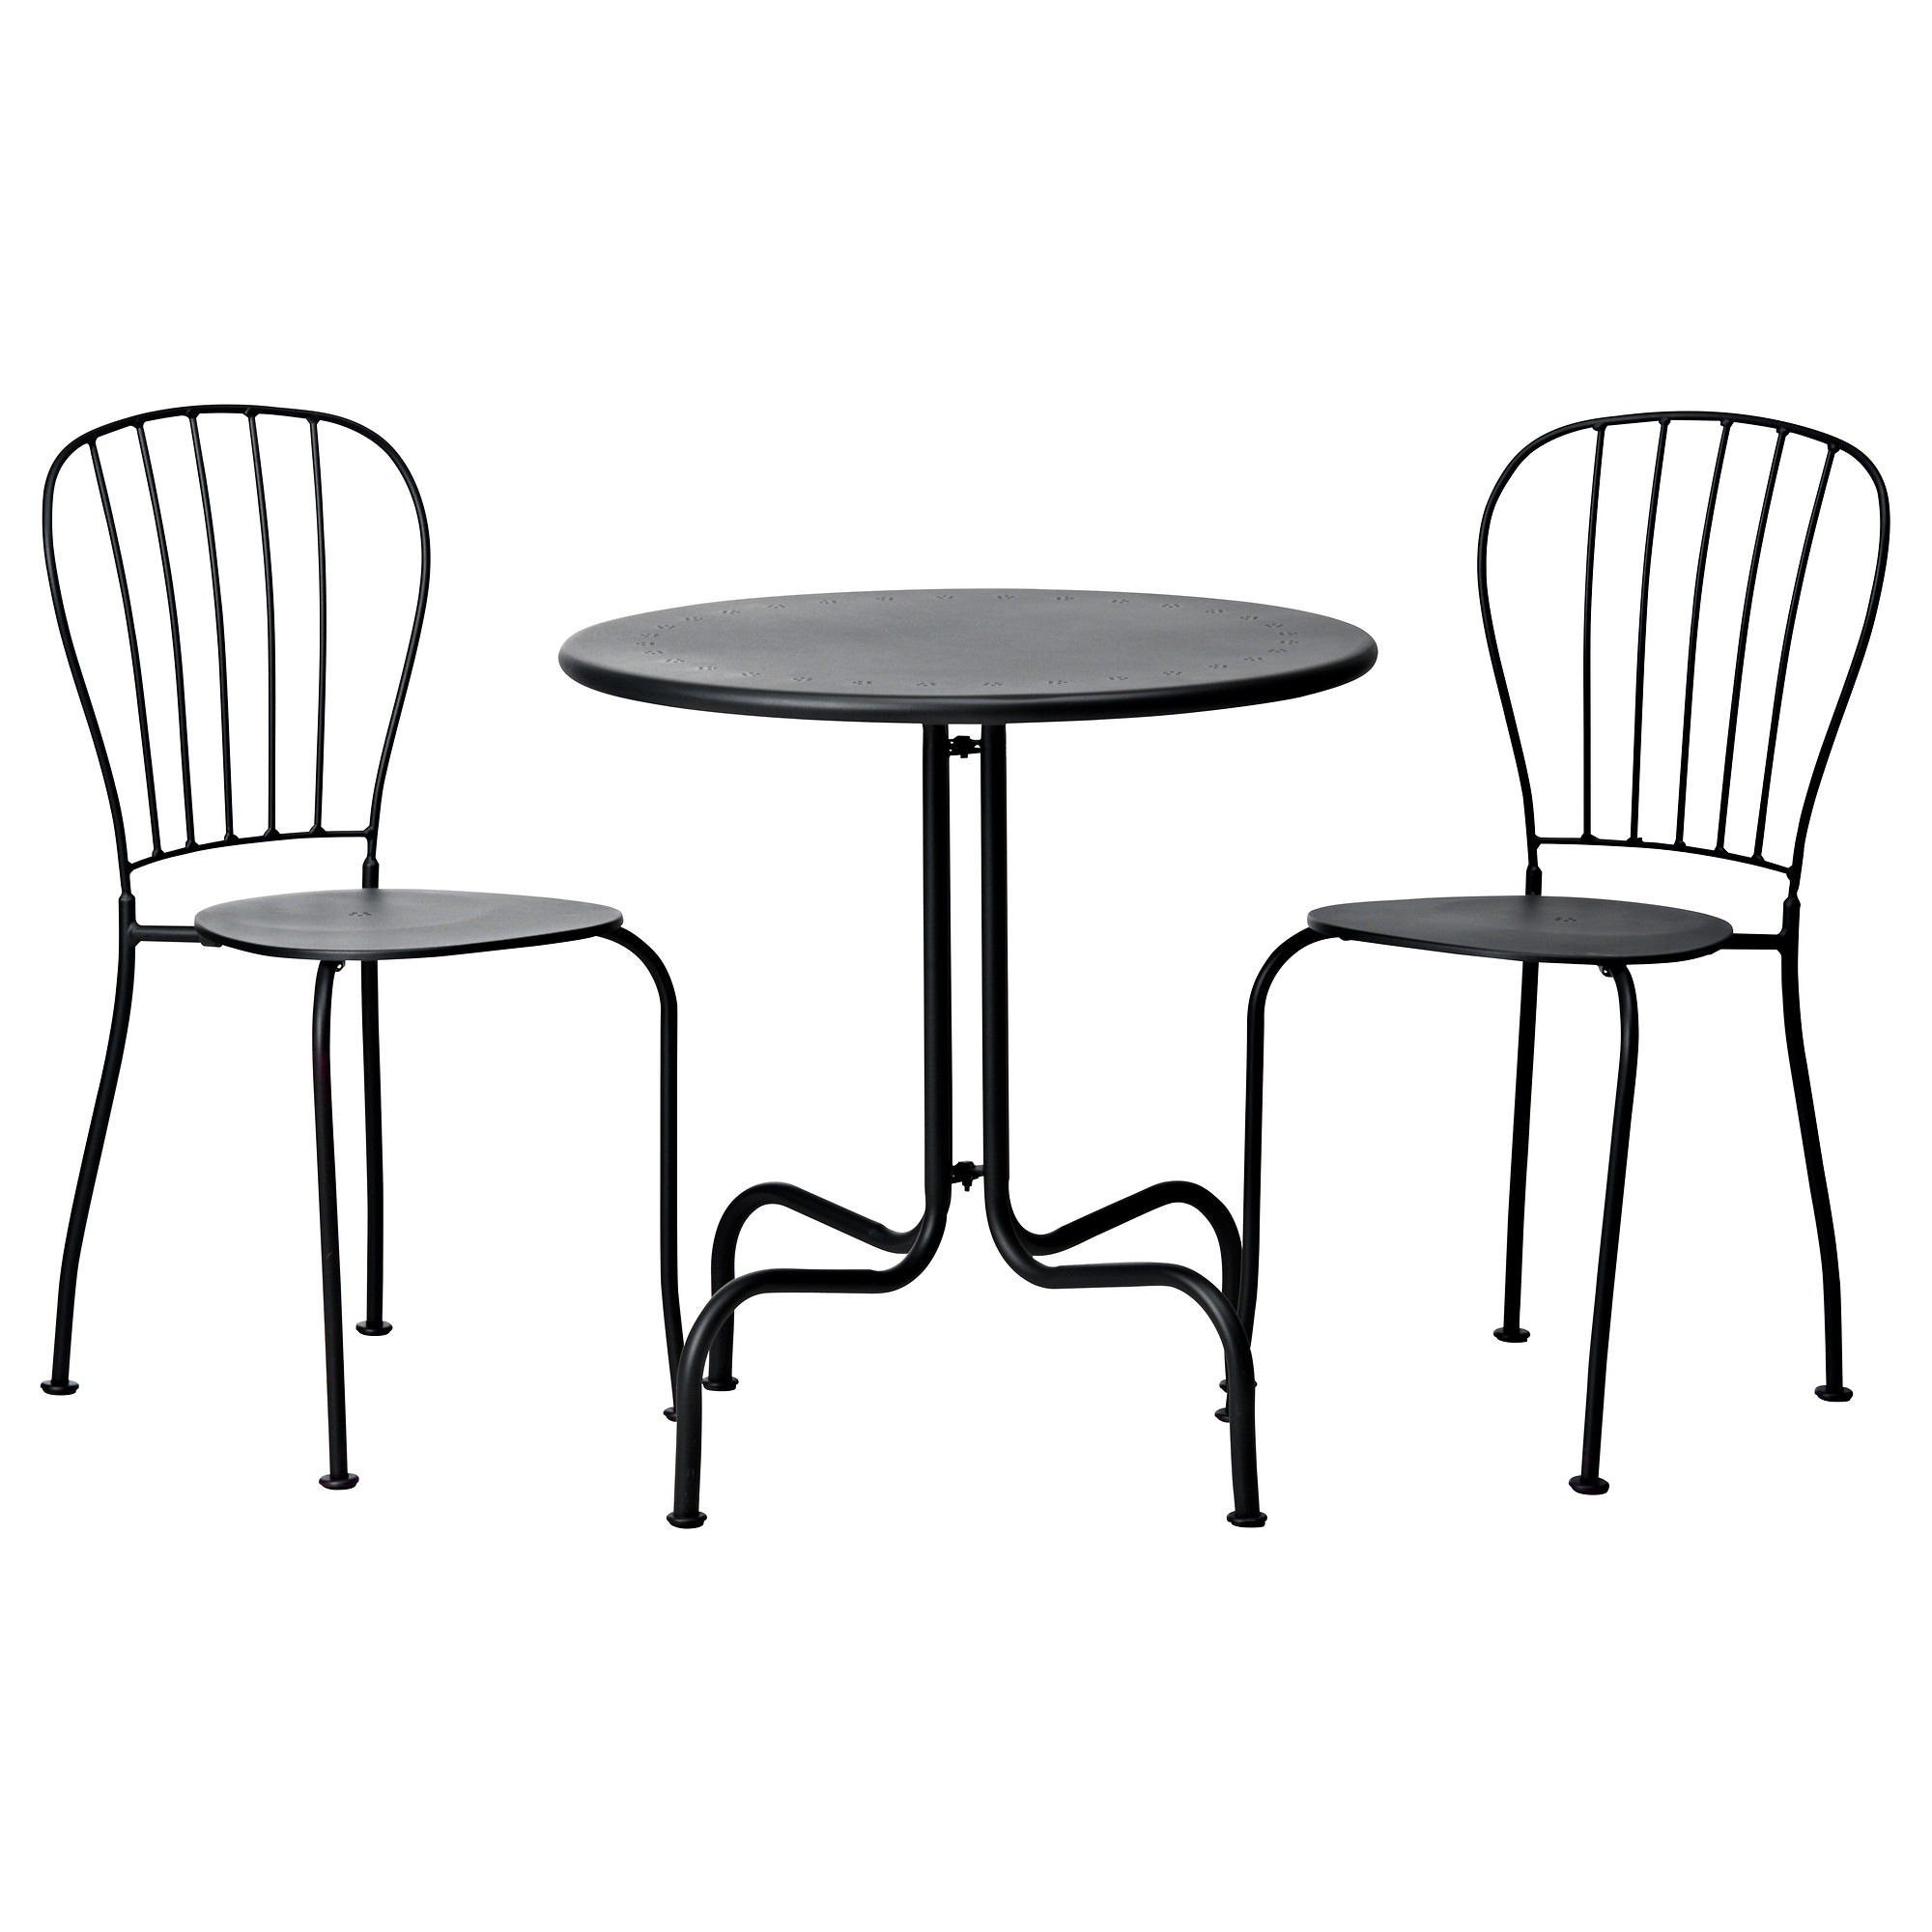 Breathtaking bistro table and chairs for home furniture ideas with outdoor bistro table and chairs